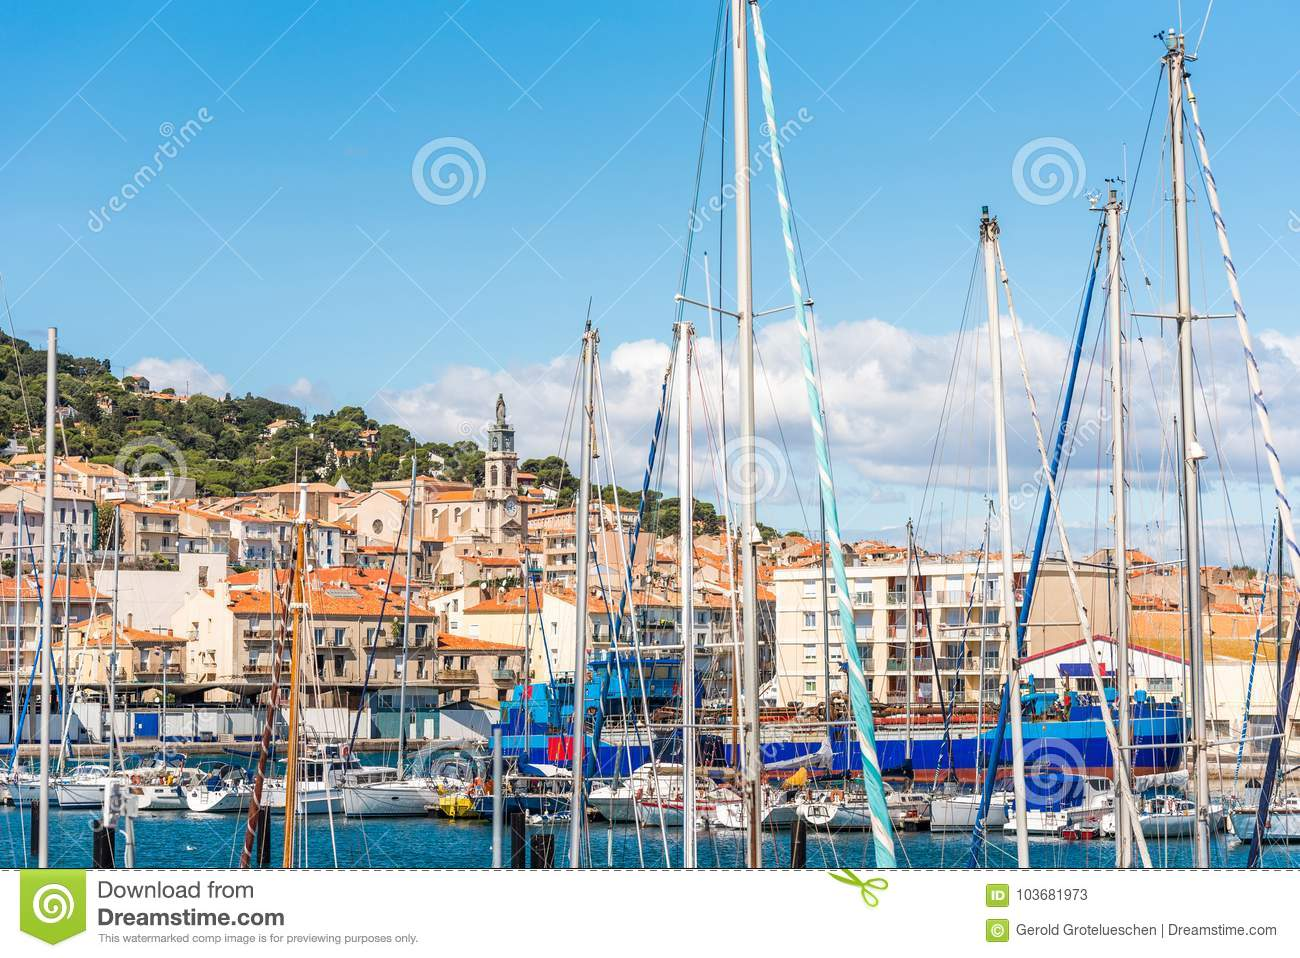 View of the harbor with yachts, Sete, France. Close-up.